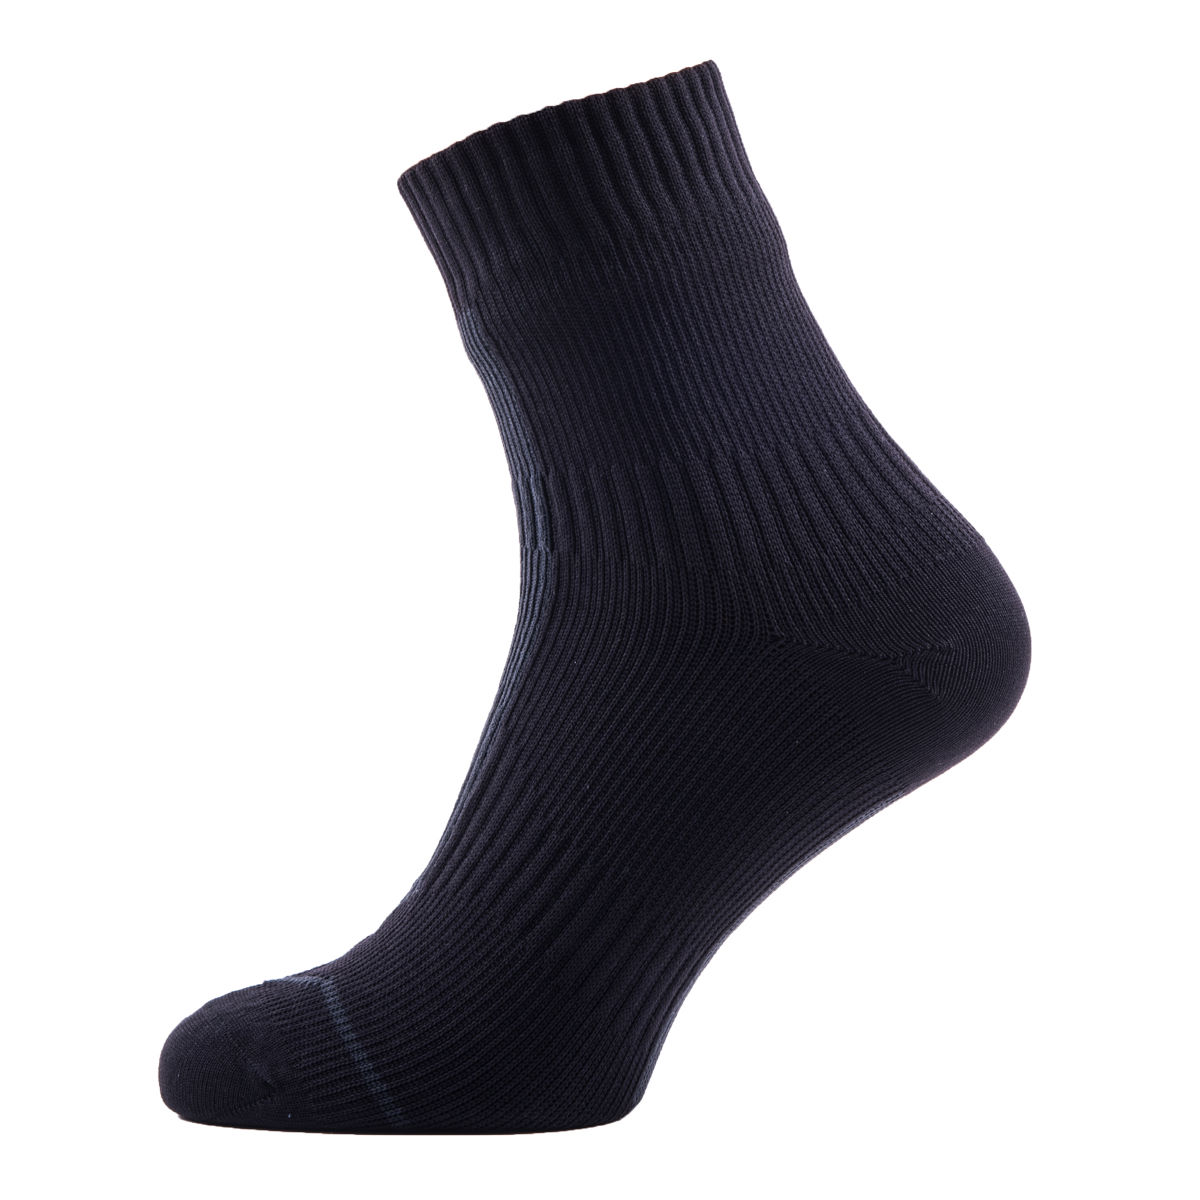 Chaussettes SealSkinz Road Hydrostop (fines) - S Noir/Anthracite